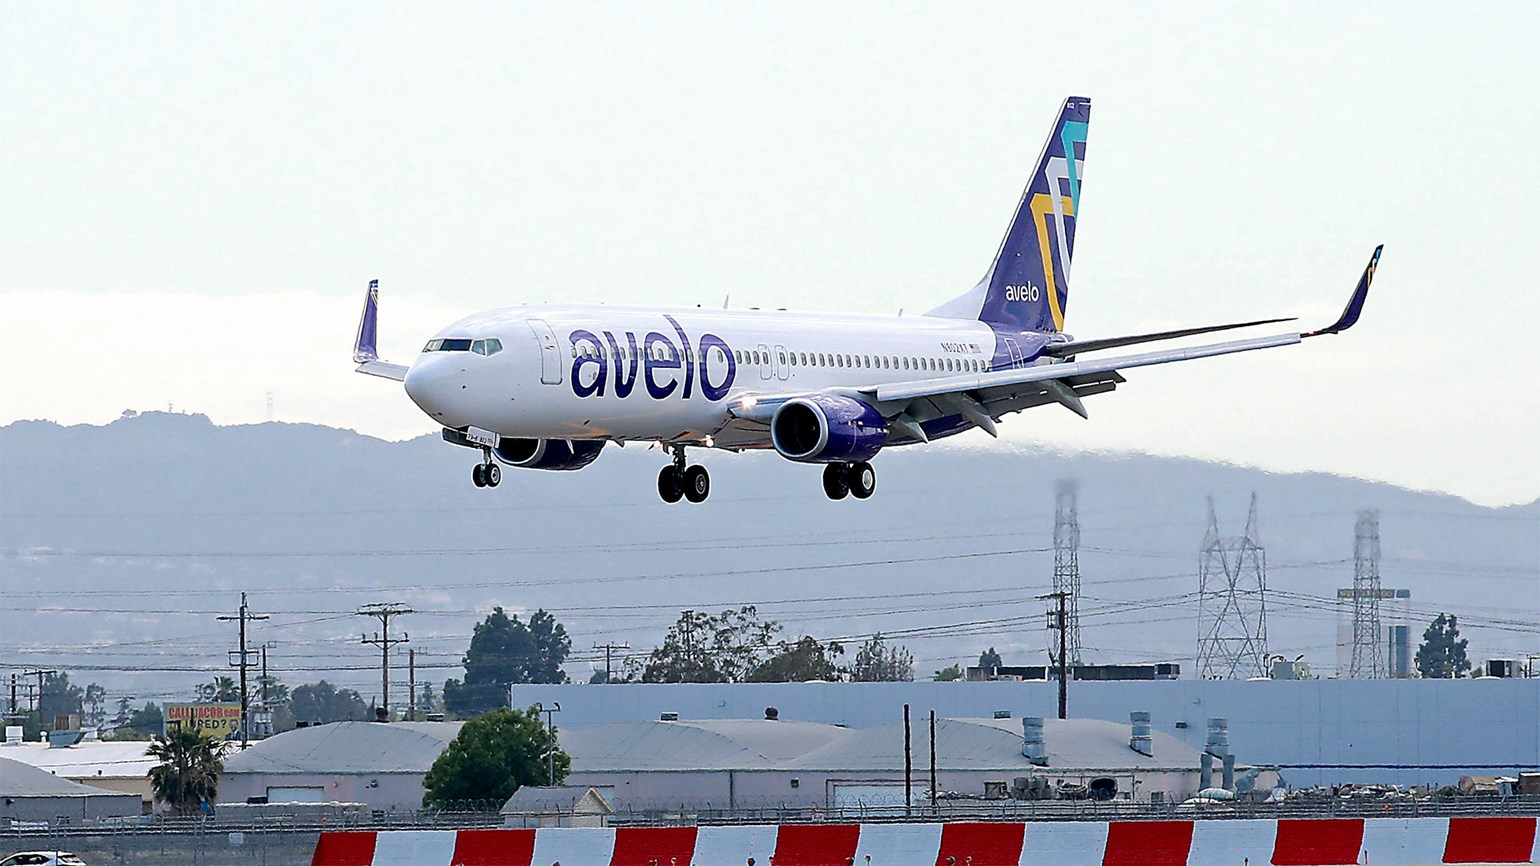 A new airline, Avelo, is ready for takeoff